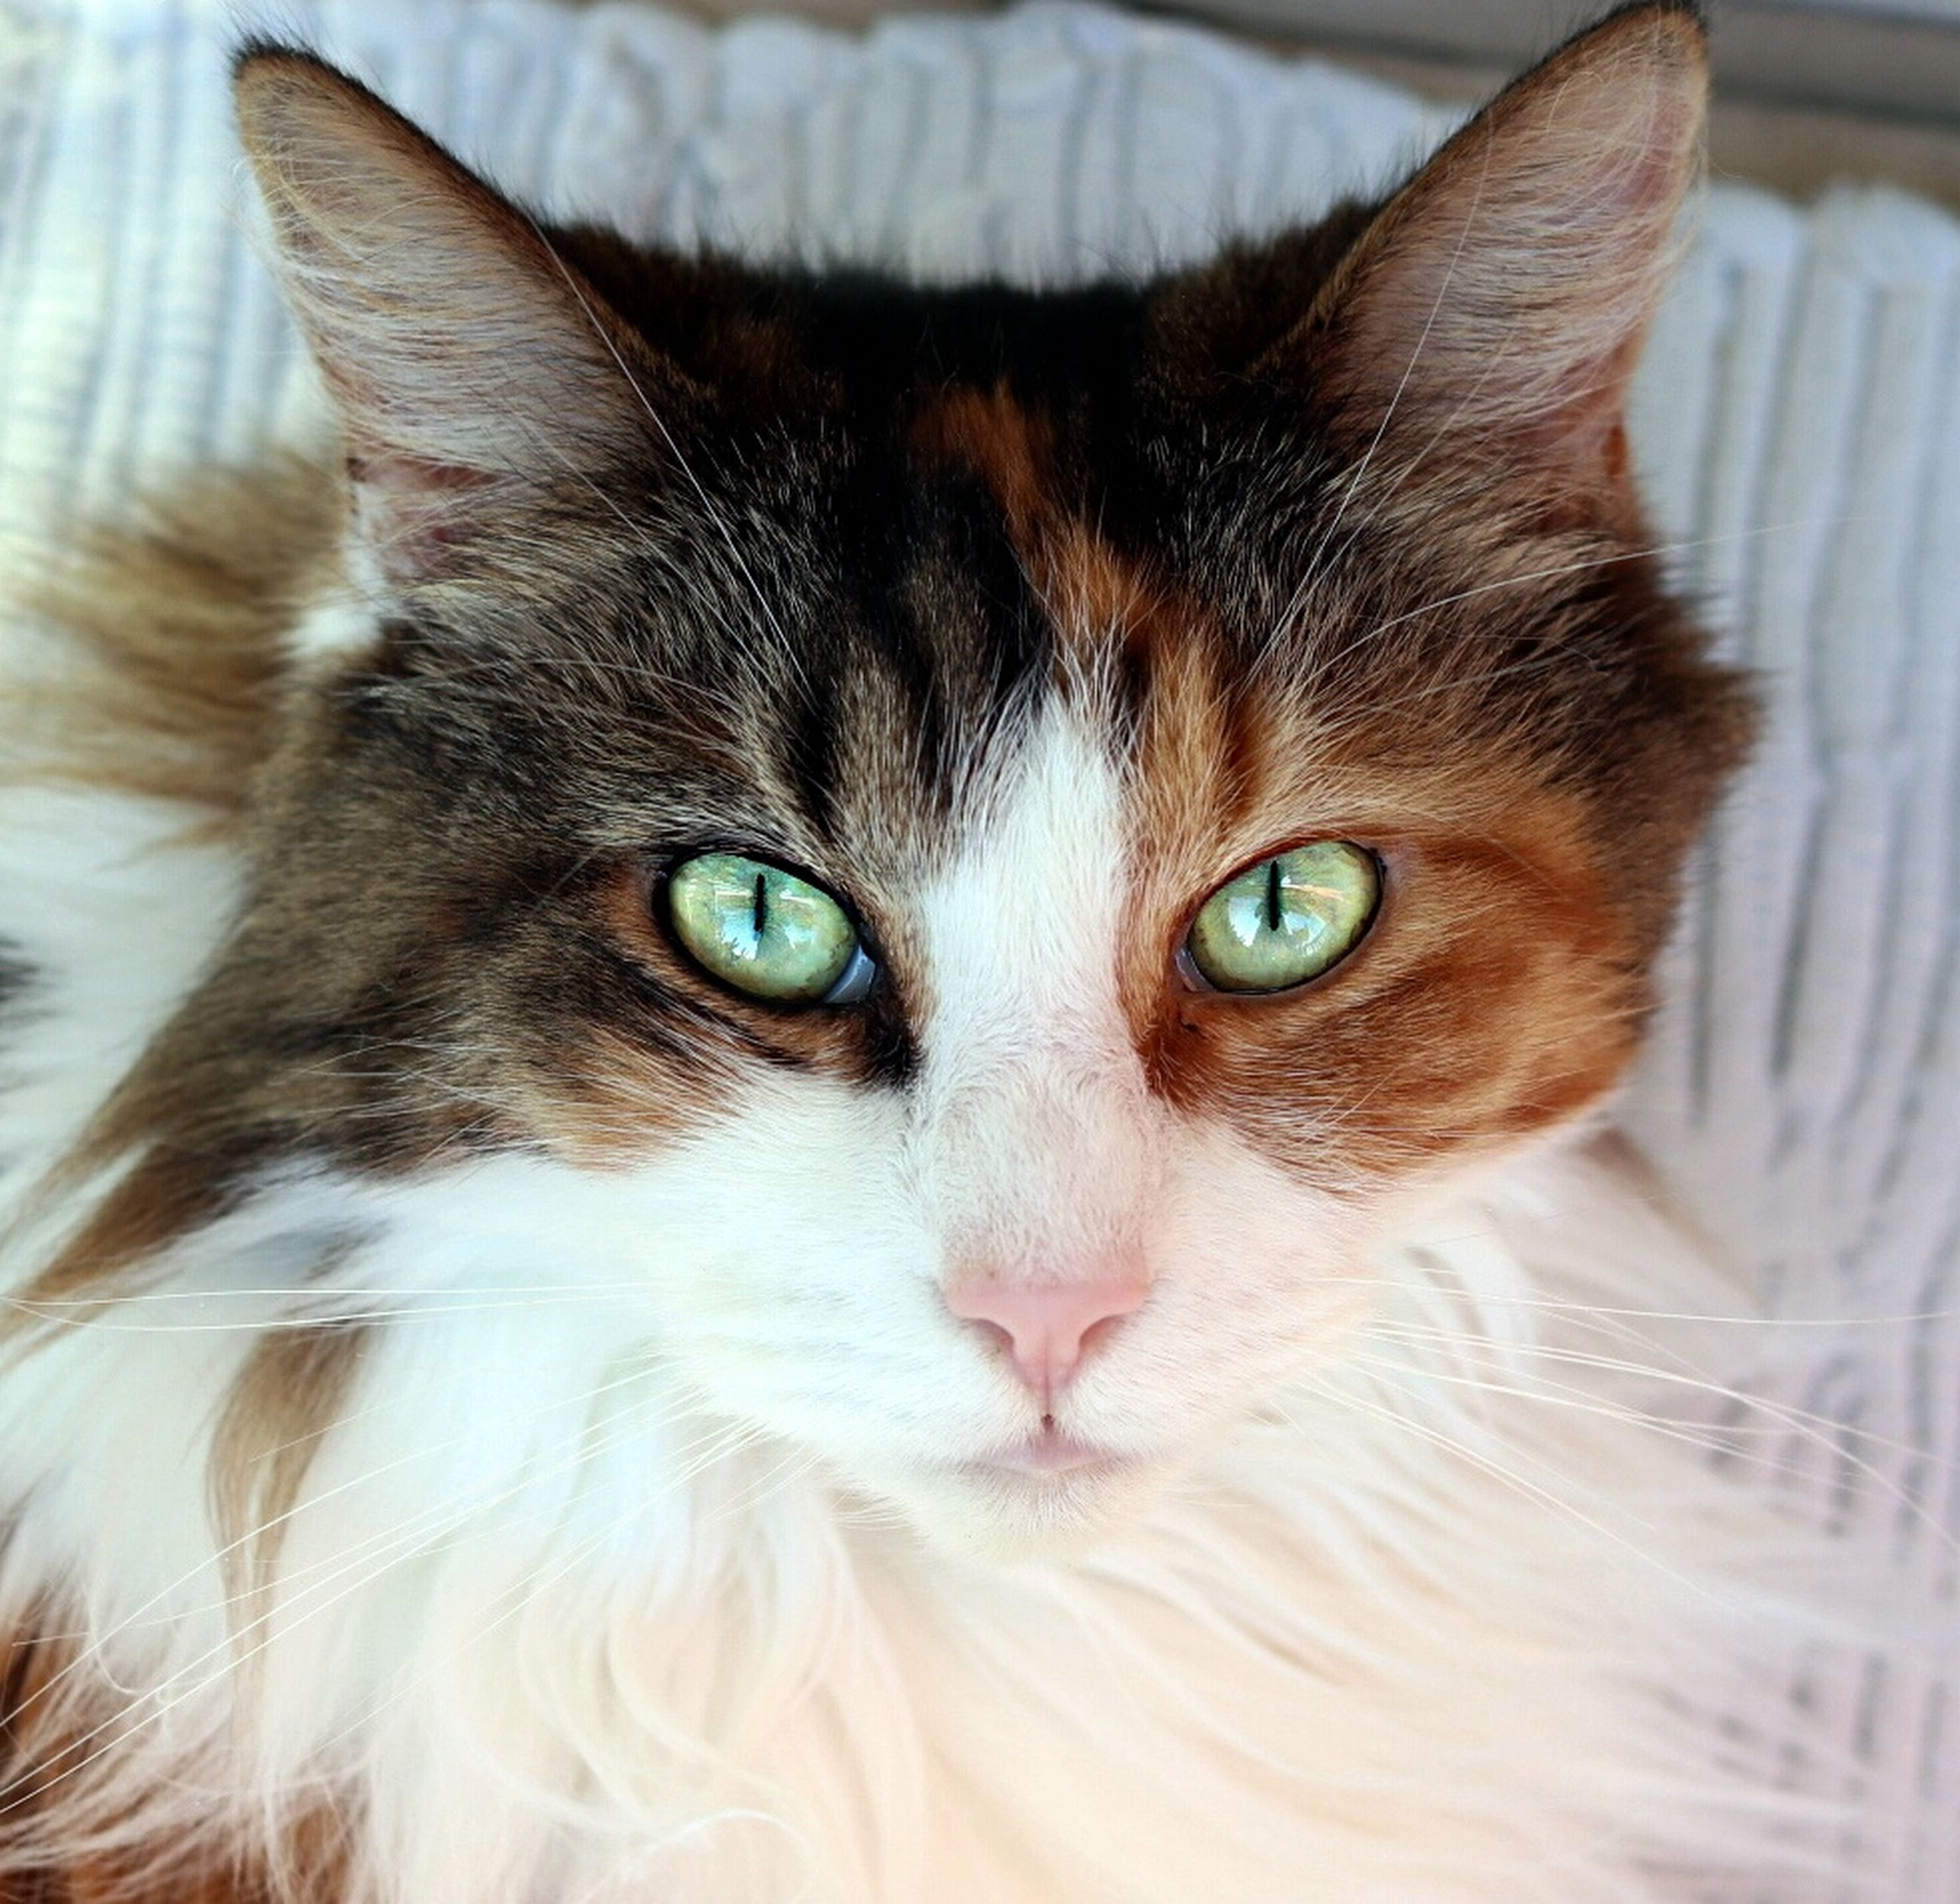 domestic cat, pets, domestic animals, feline, animal themes, indoors, mammal, looking at camera, one animal, whisker, portrait, close-up, no people, home interior, day